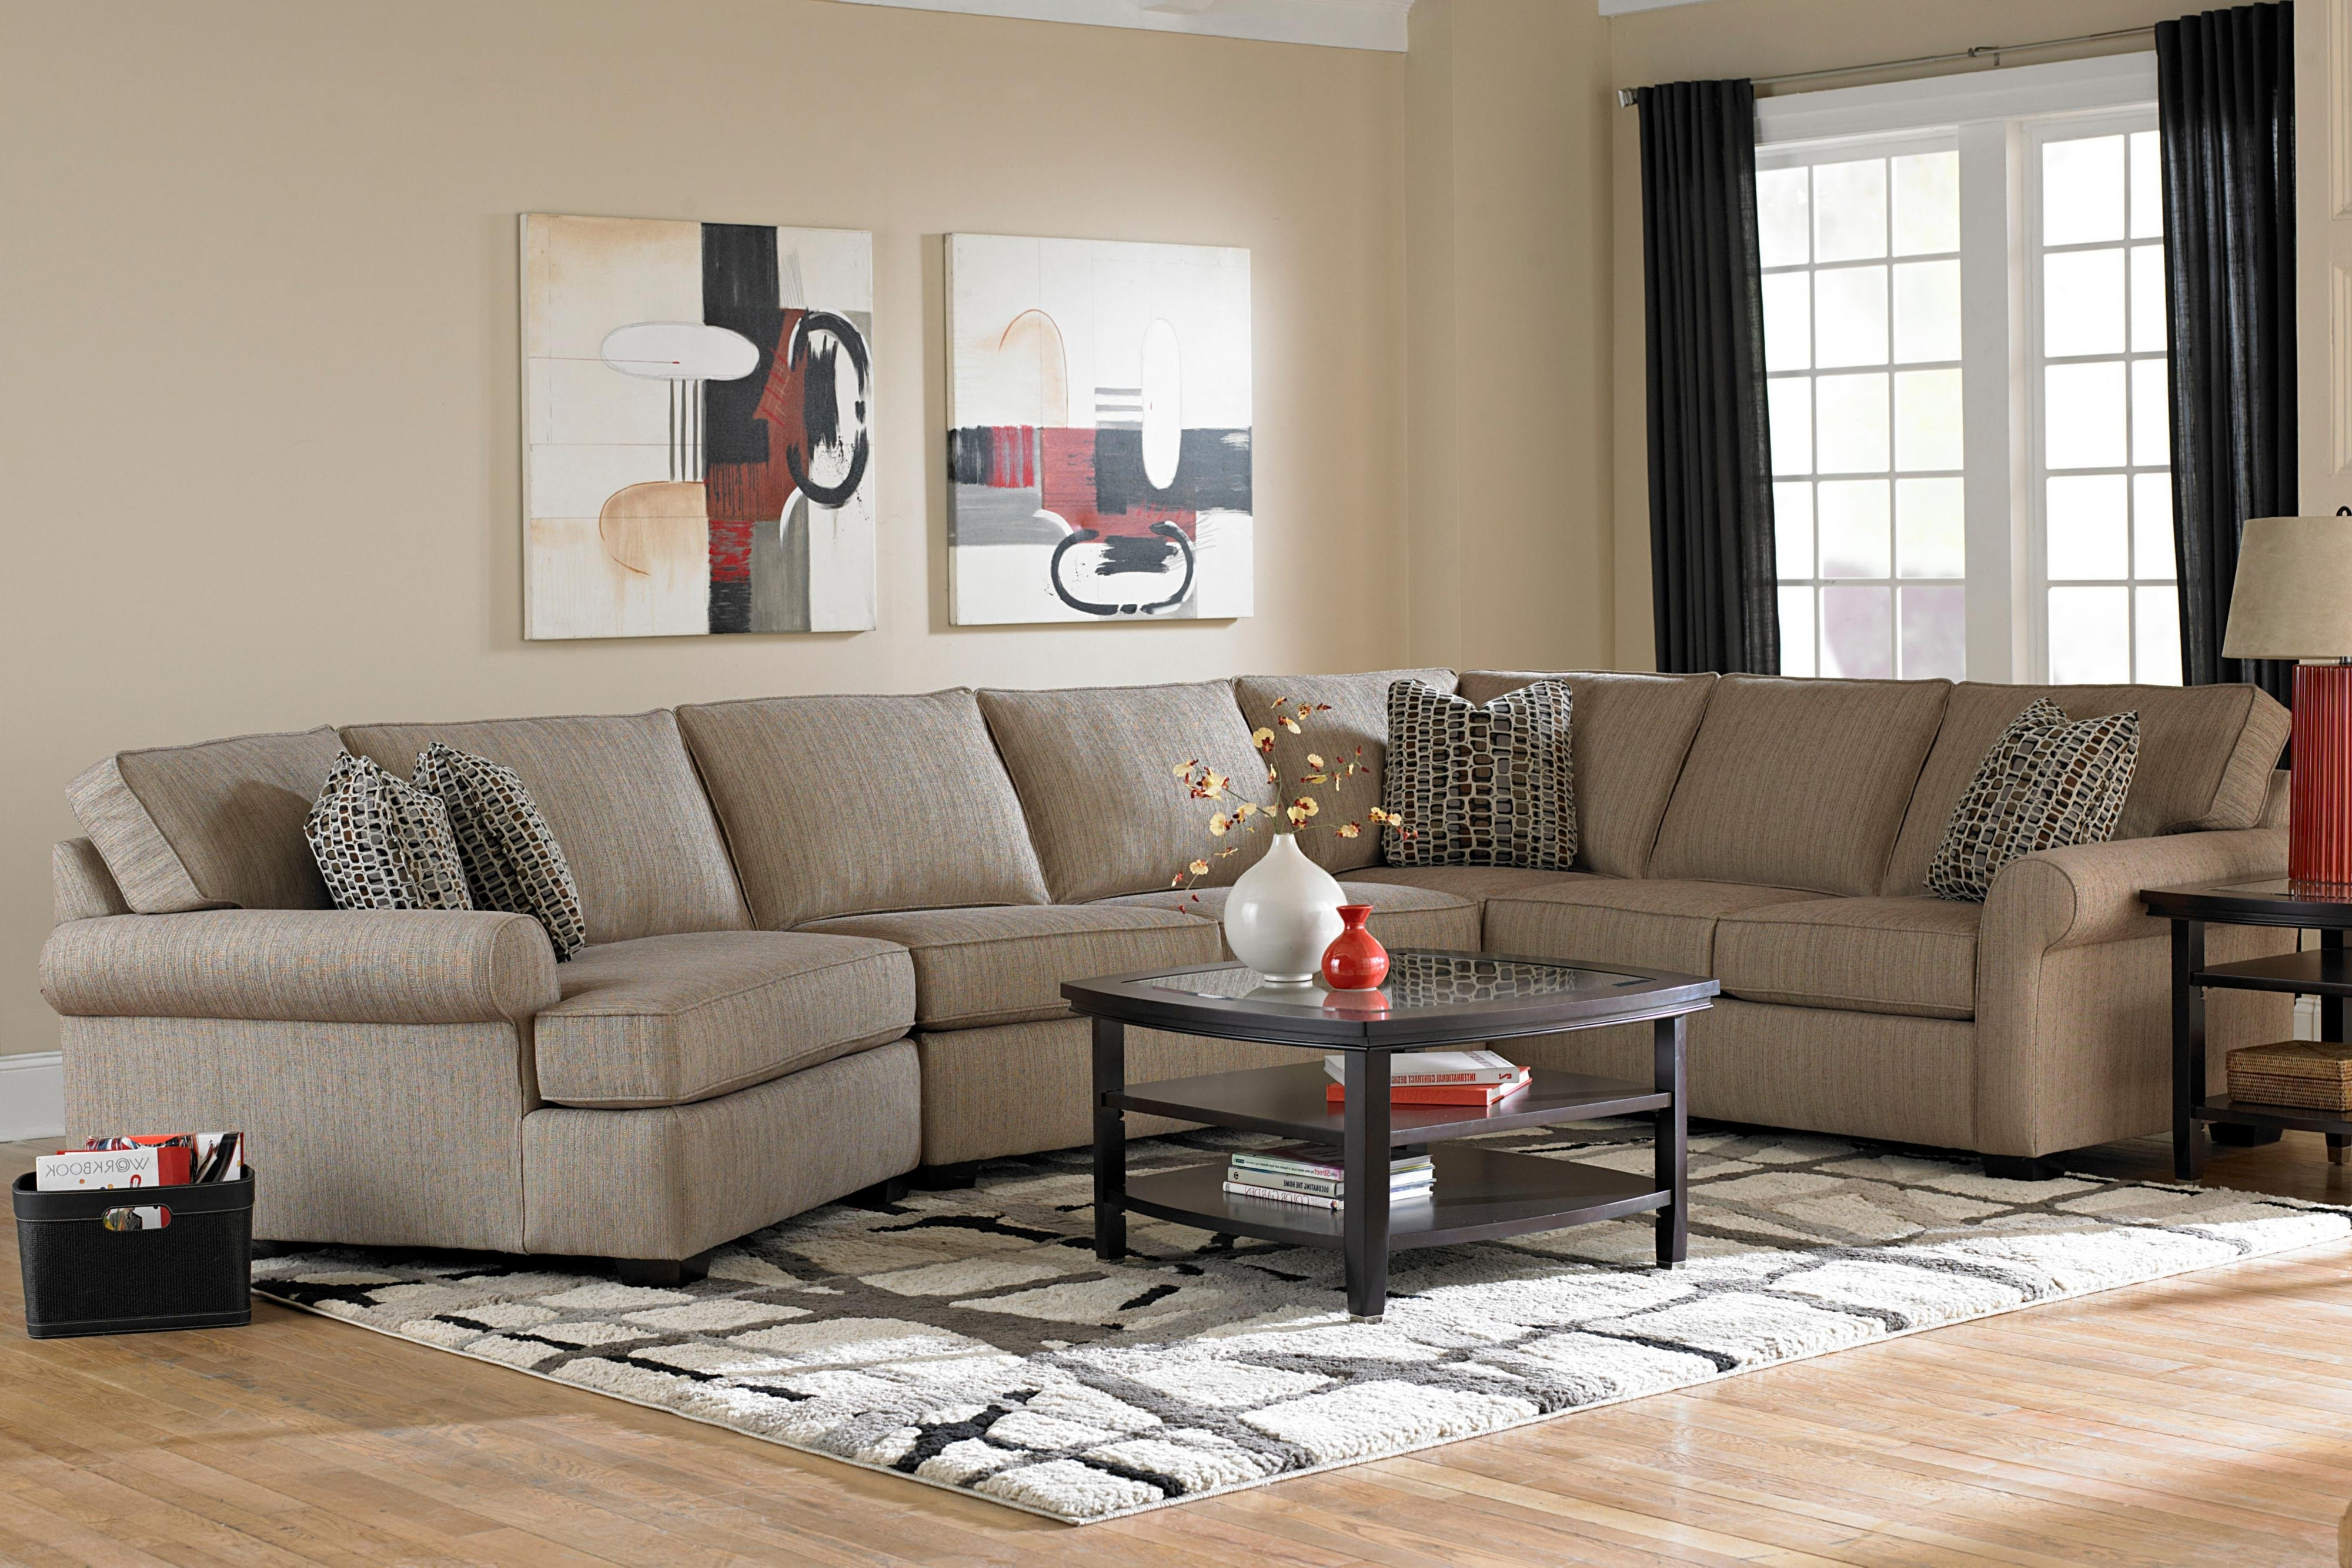 Newest Broyhill Furniture Ethan Transitional Sectional Sofa With Right For Pensacola Fl Sectional Sofas (View 6 of 15)